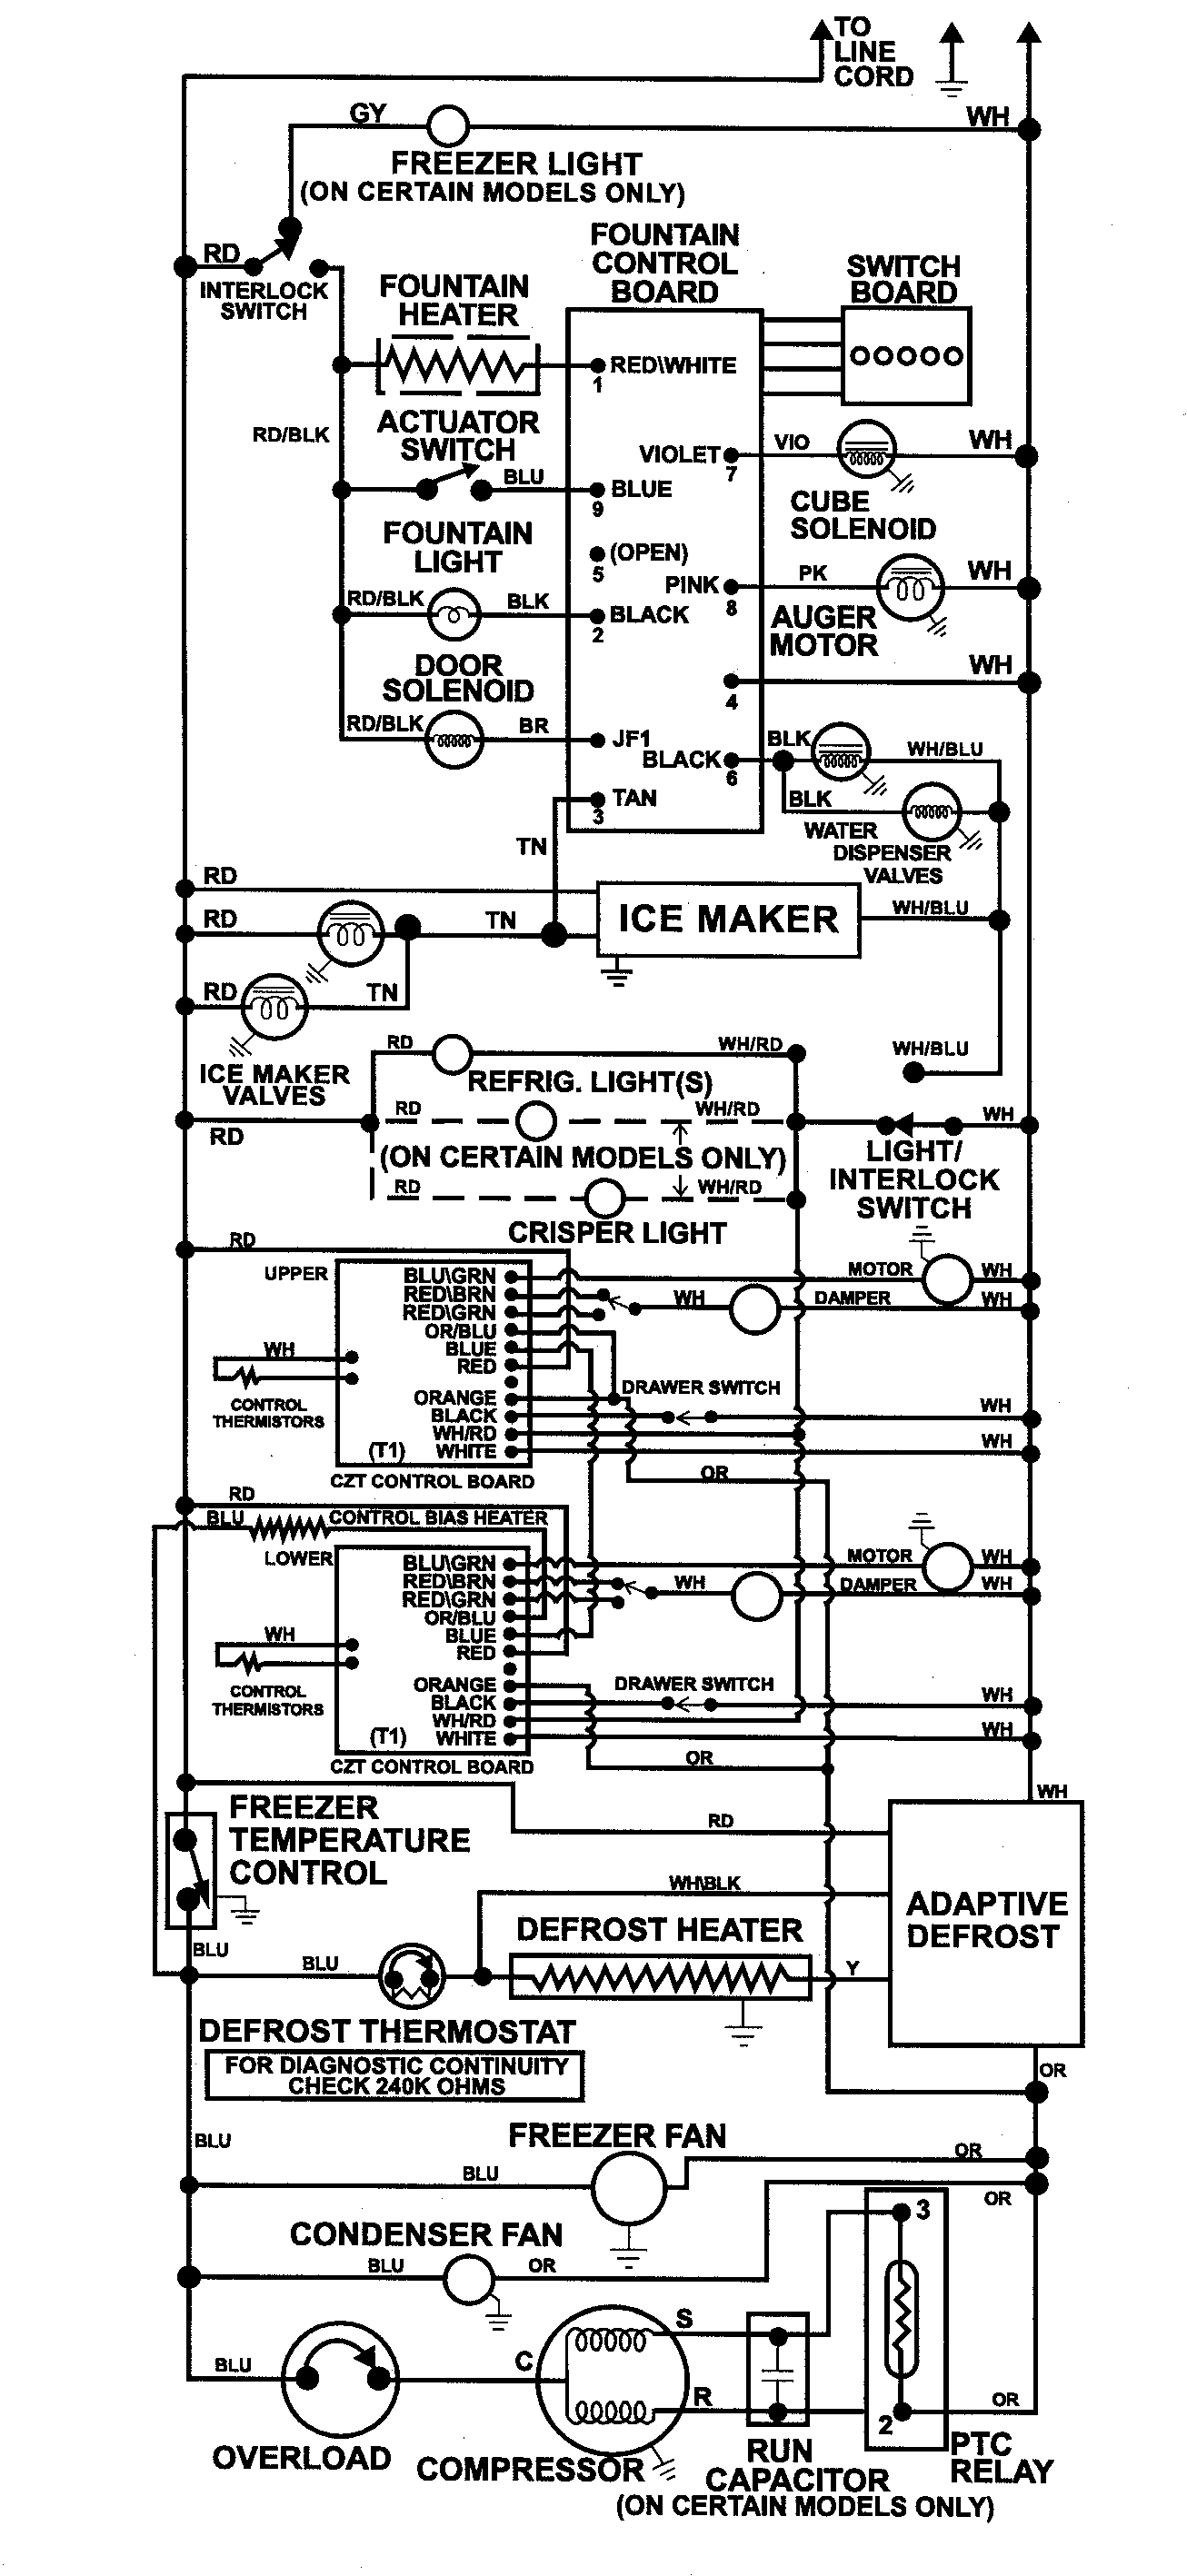 What Color Is The Power Wire To Icemaker In A Maytag Mzd2768ge Ice Maker Circuit Board Wiring Diagram Heres Wirring For Whole Refrigerator Are You Trying Cycle This Start Harvest